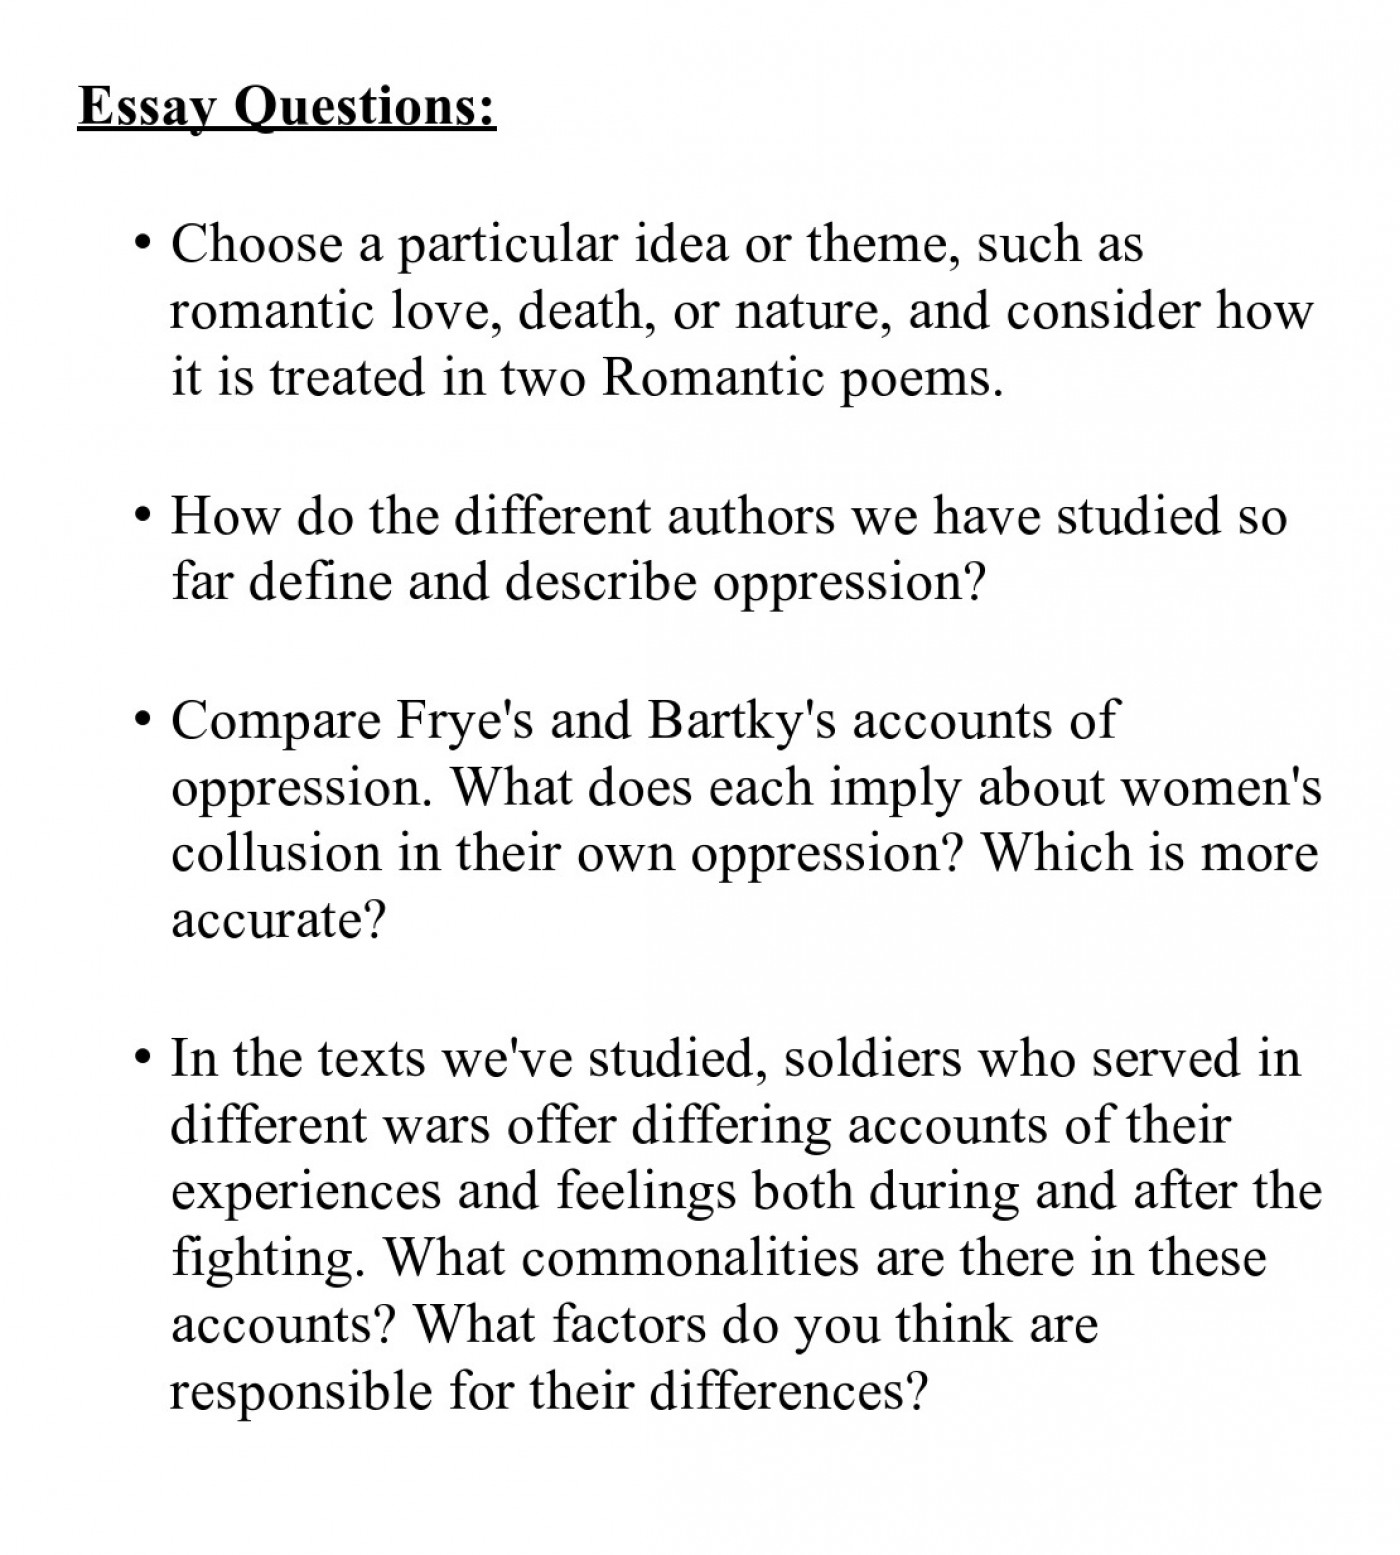 007 College Essay Topics Example Questions Top A B And C Argumentative Common To Avoid 1400